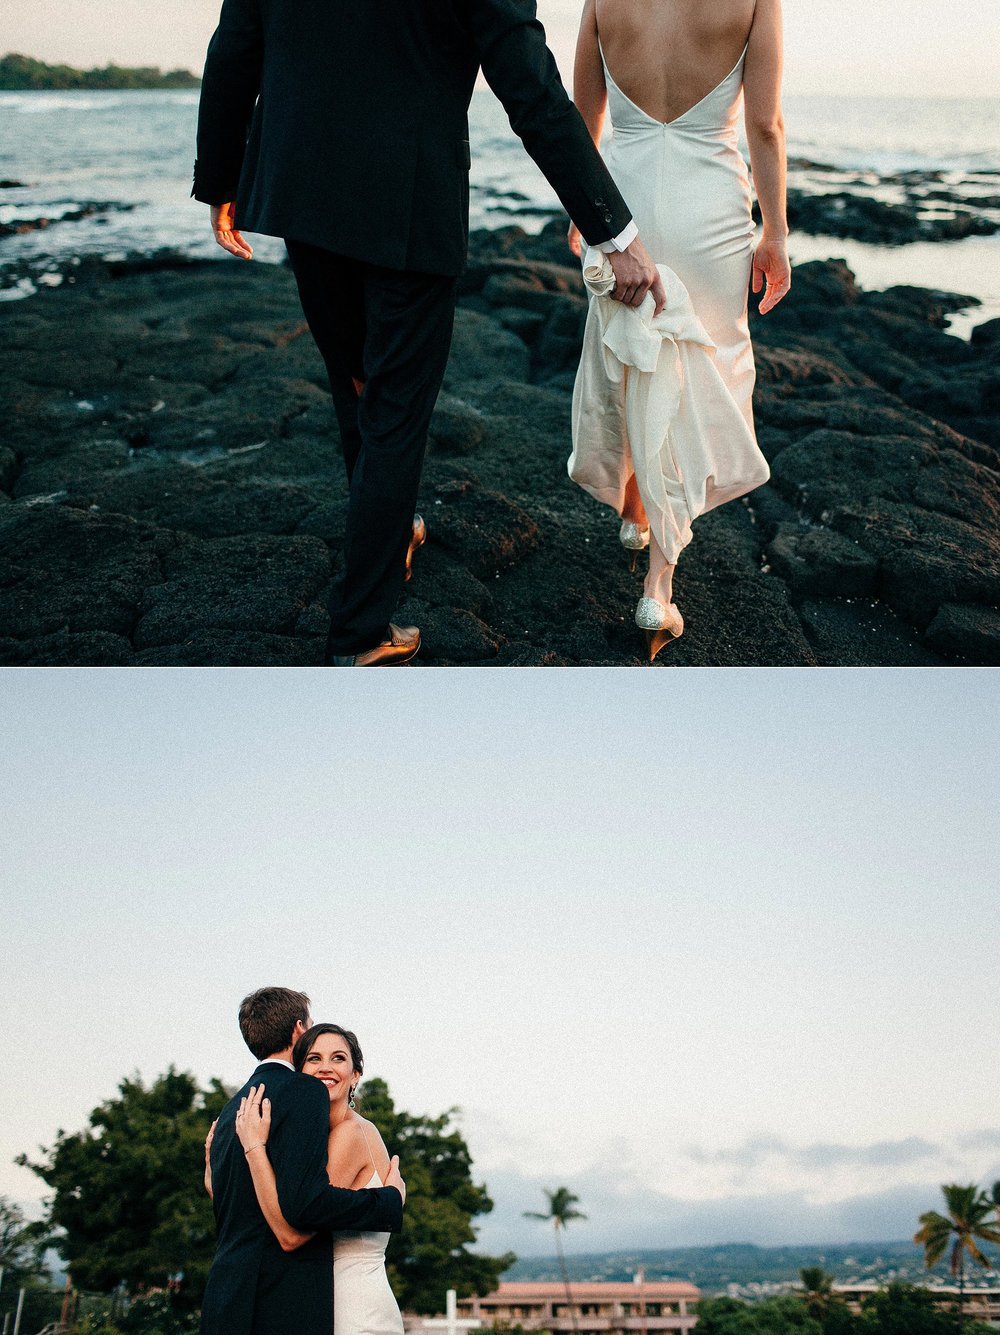 Kona-Big-Island-Hawaii-New-Years-Eve-Wedding-with-Ceremony-at-Living-Stones-Church-and-Reception-at-Daylight-Mind-Coffee_0019.jpg